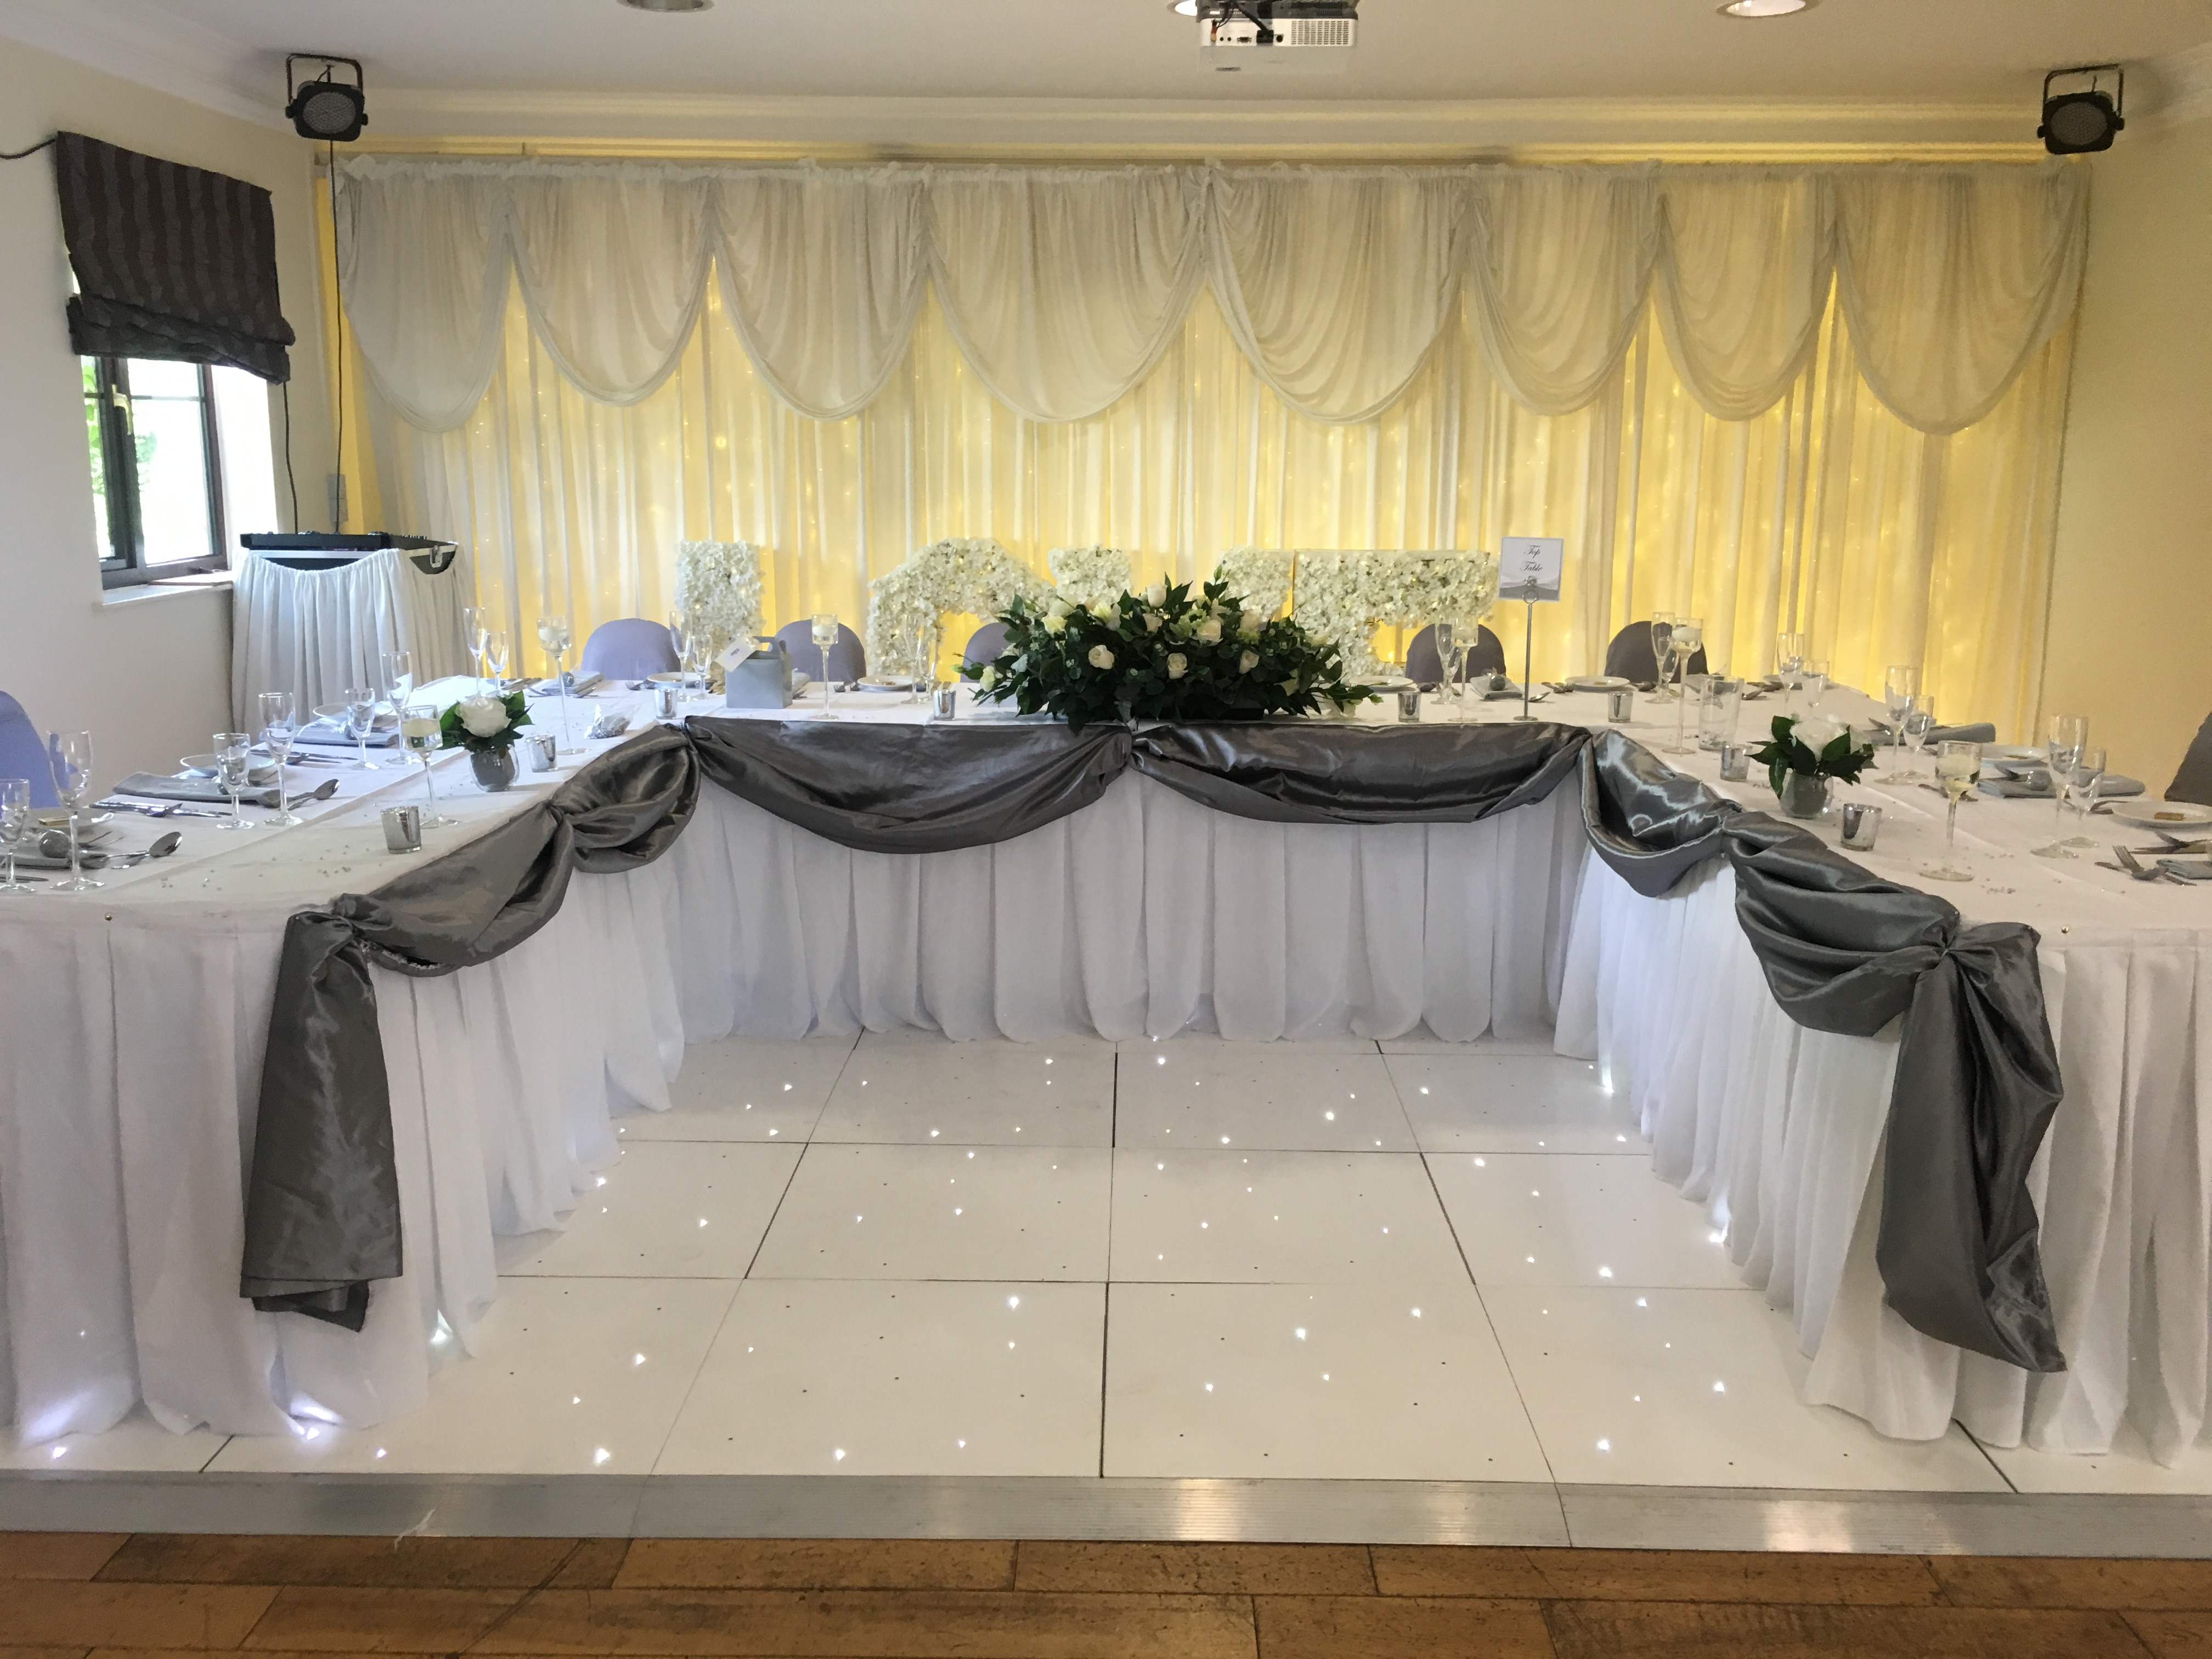 Grey Satin Top Table Swag & Decor - Thornhurst Manor Sophia's Final Touch - Venue Styling - Weddings